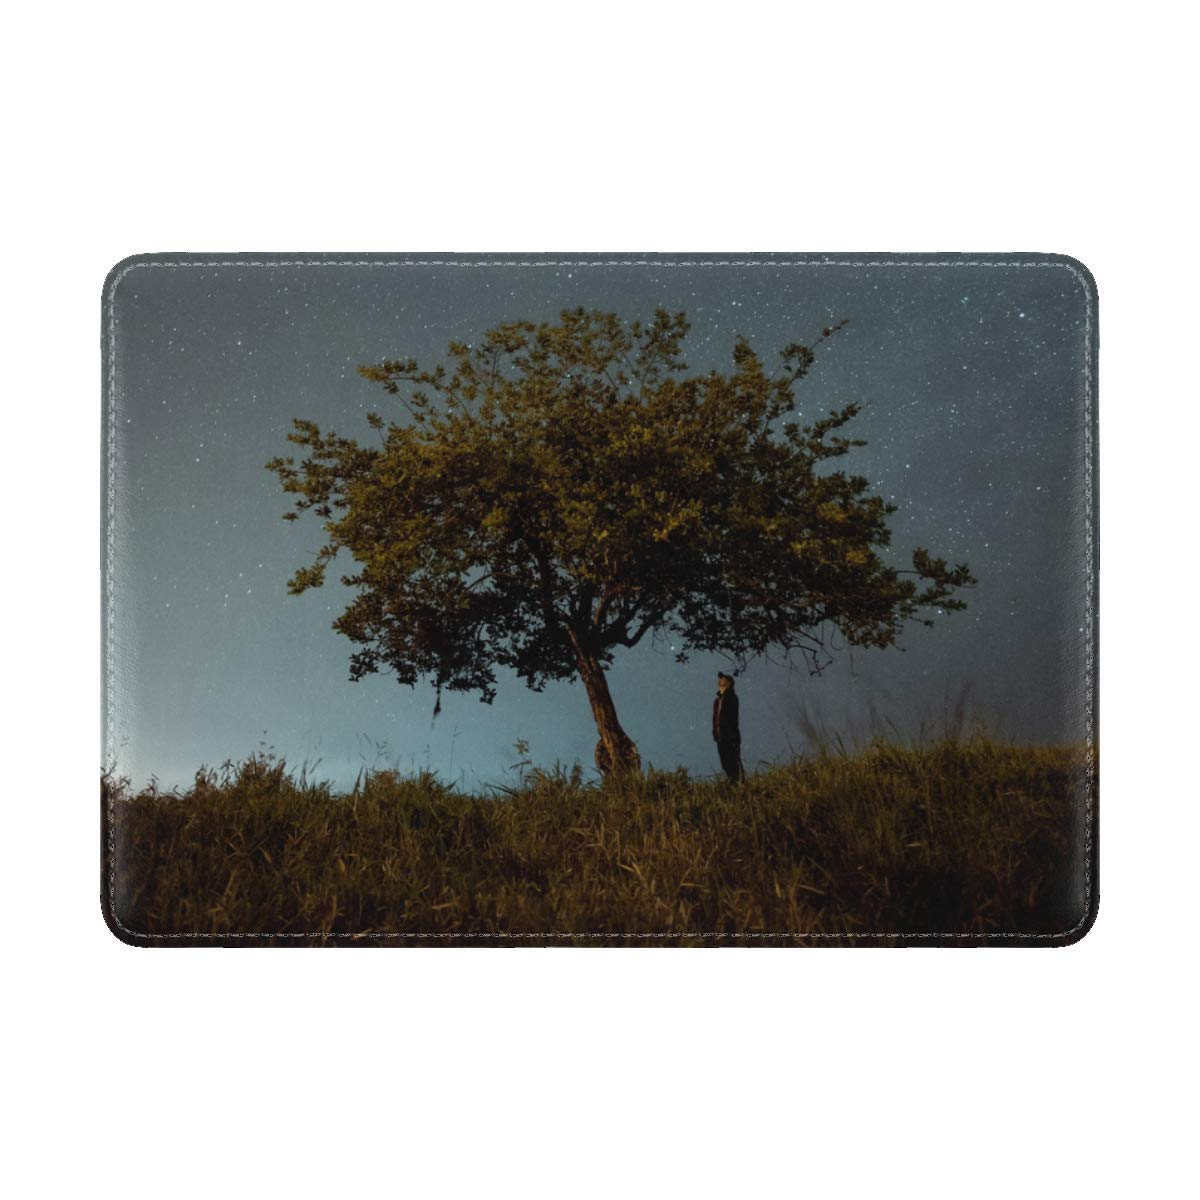 Tree Man Night Leather Passport Holder Cover Case Travel One Pocket